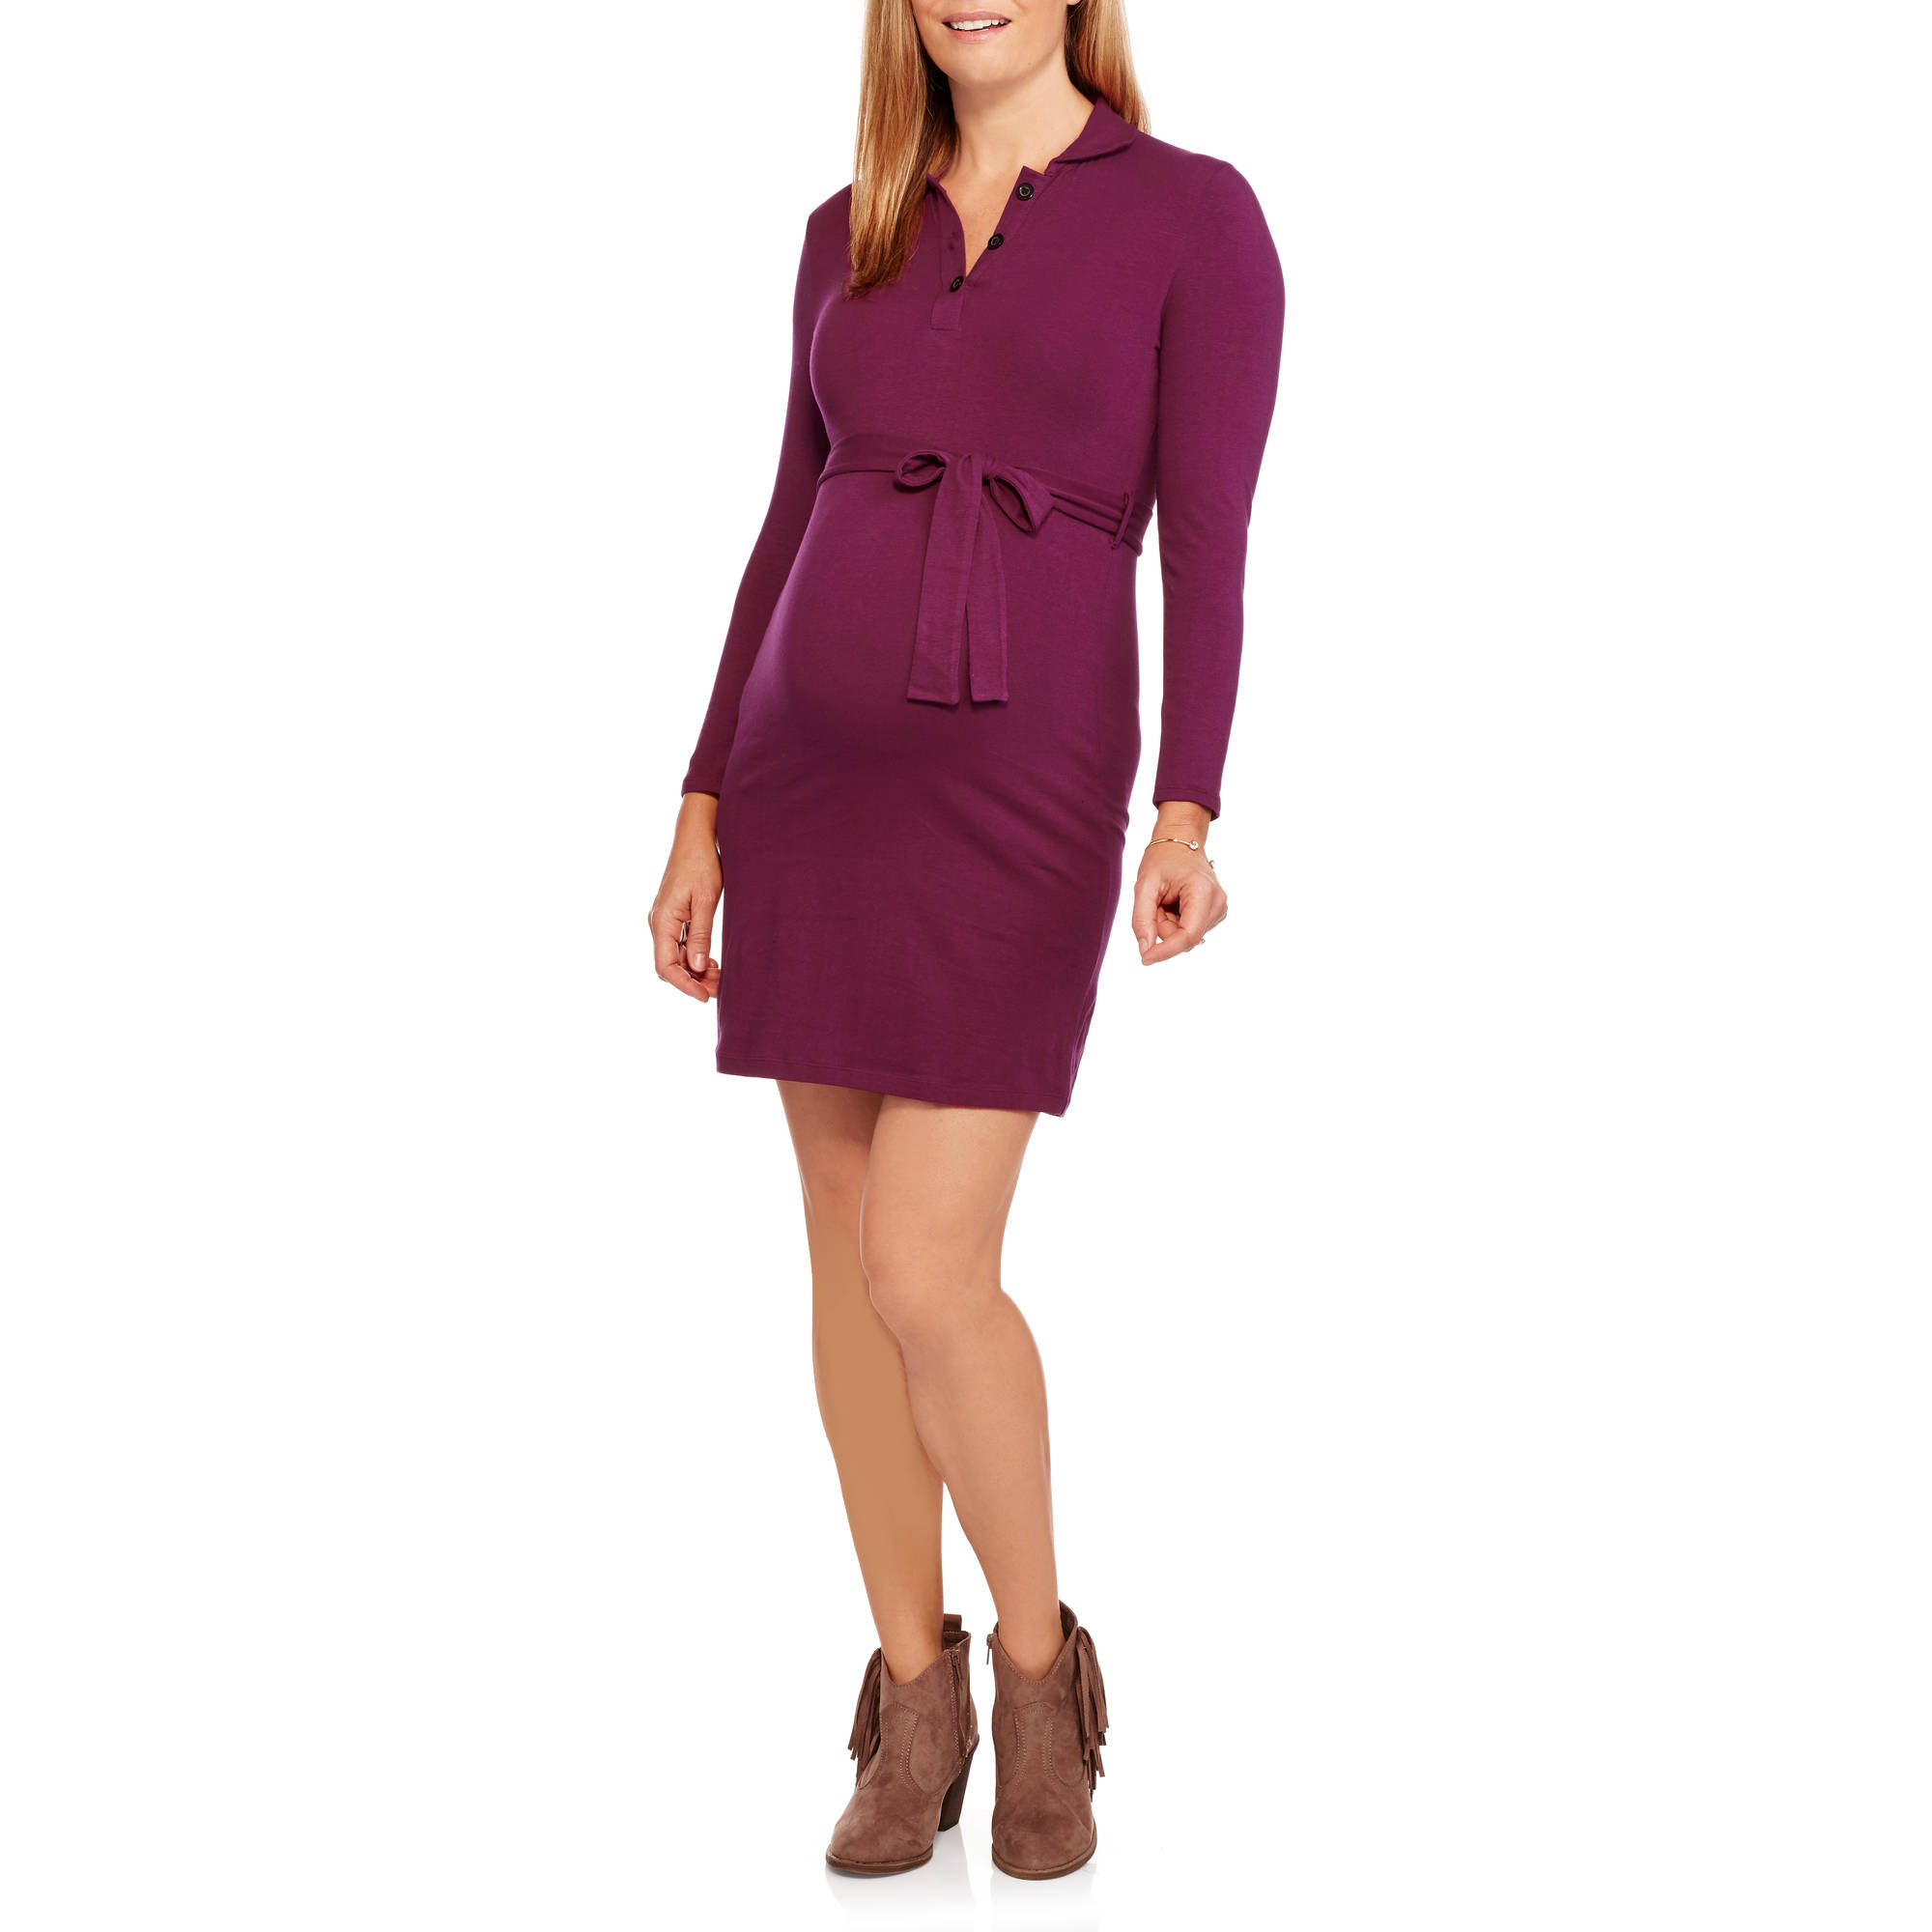 Maternity Long Sleeve  3 button placket collared dress with tie belt